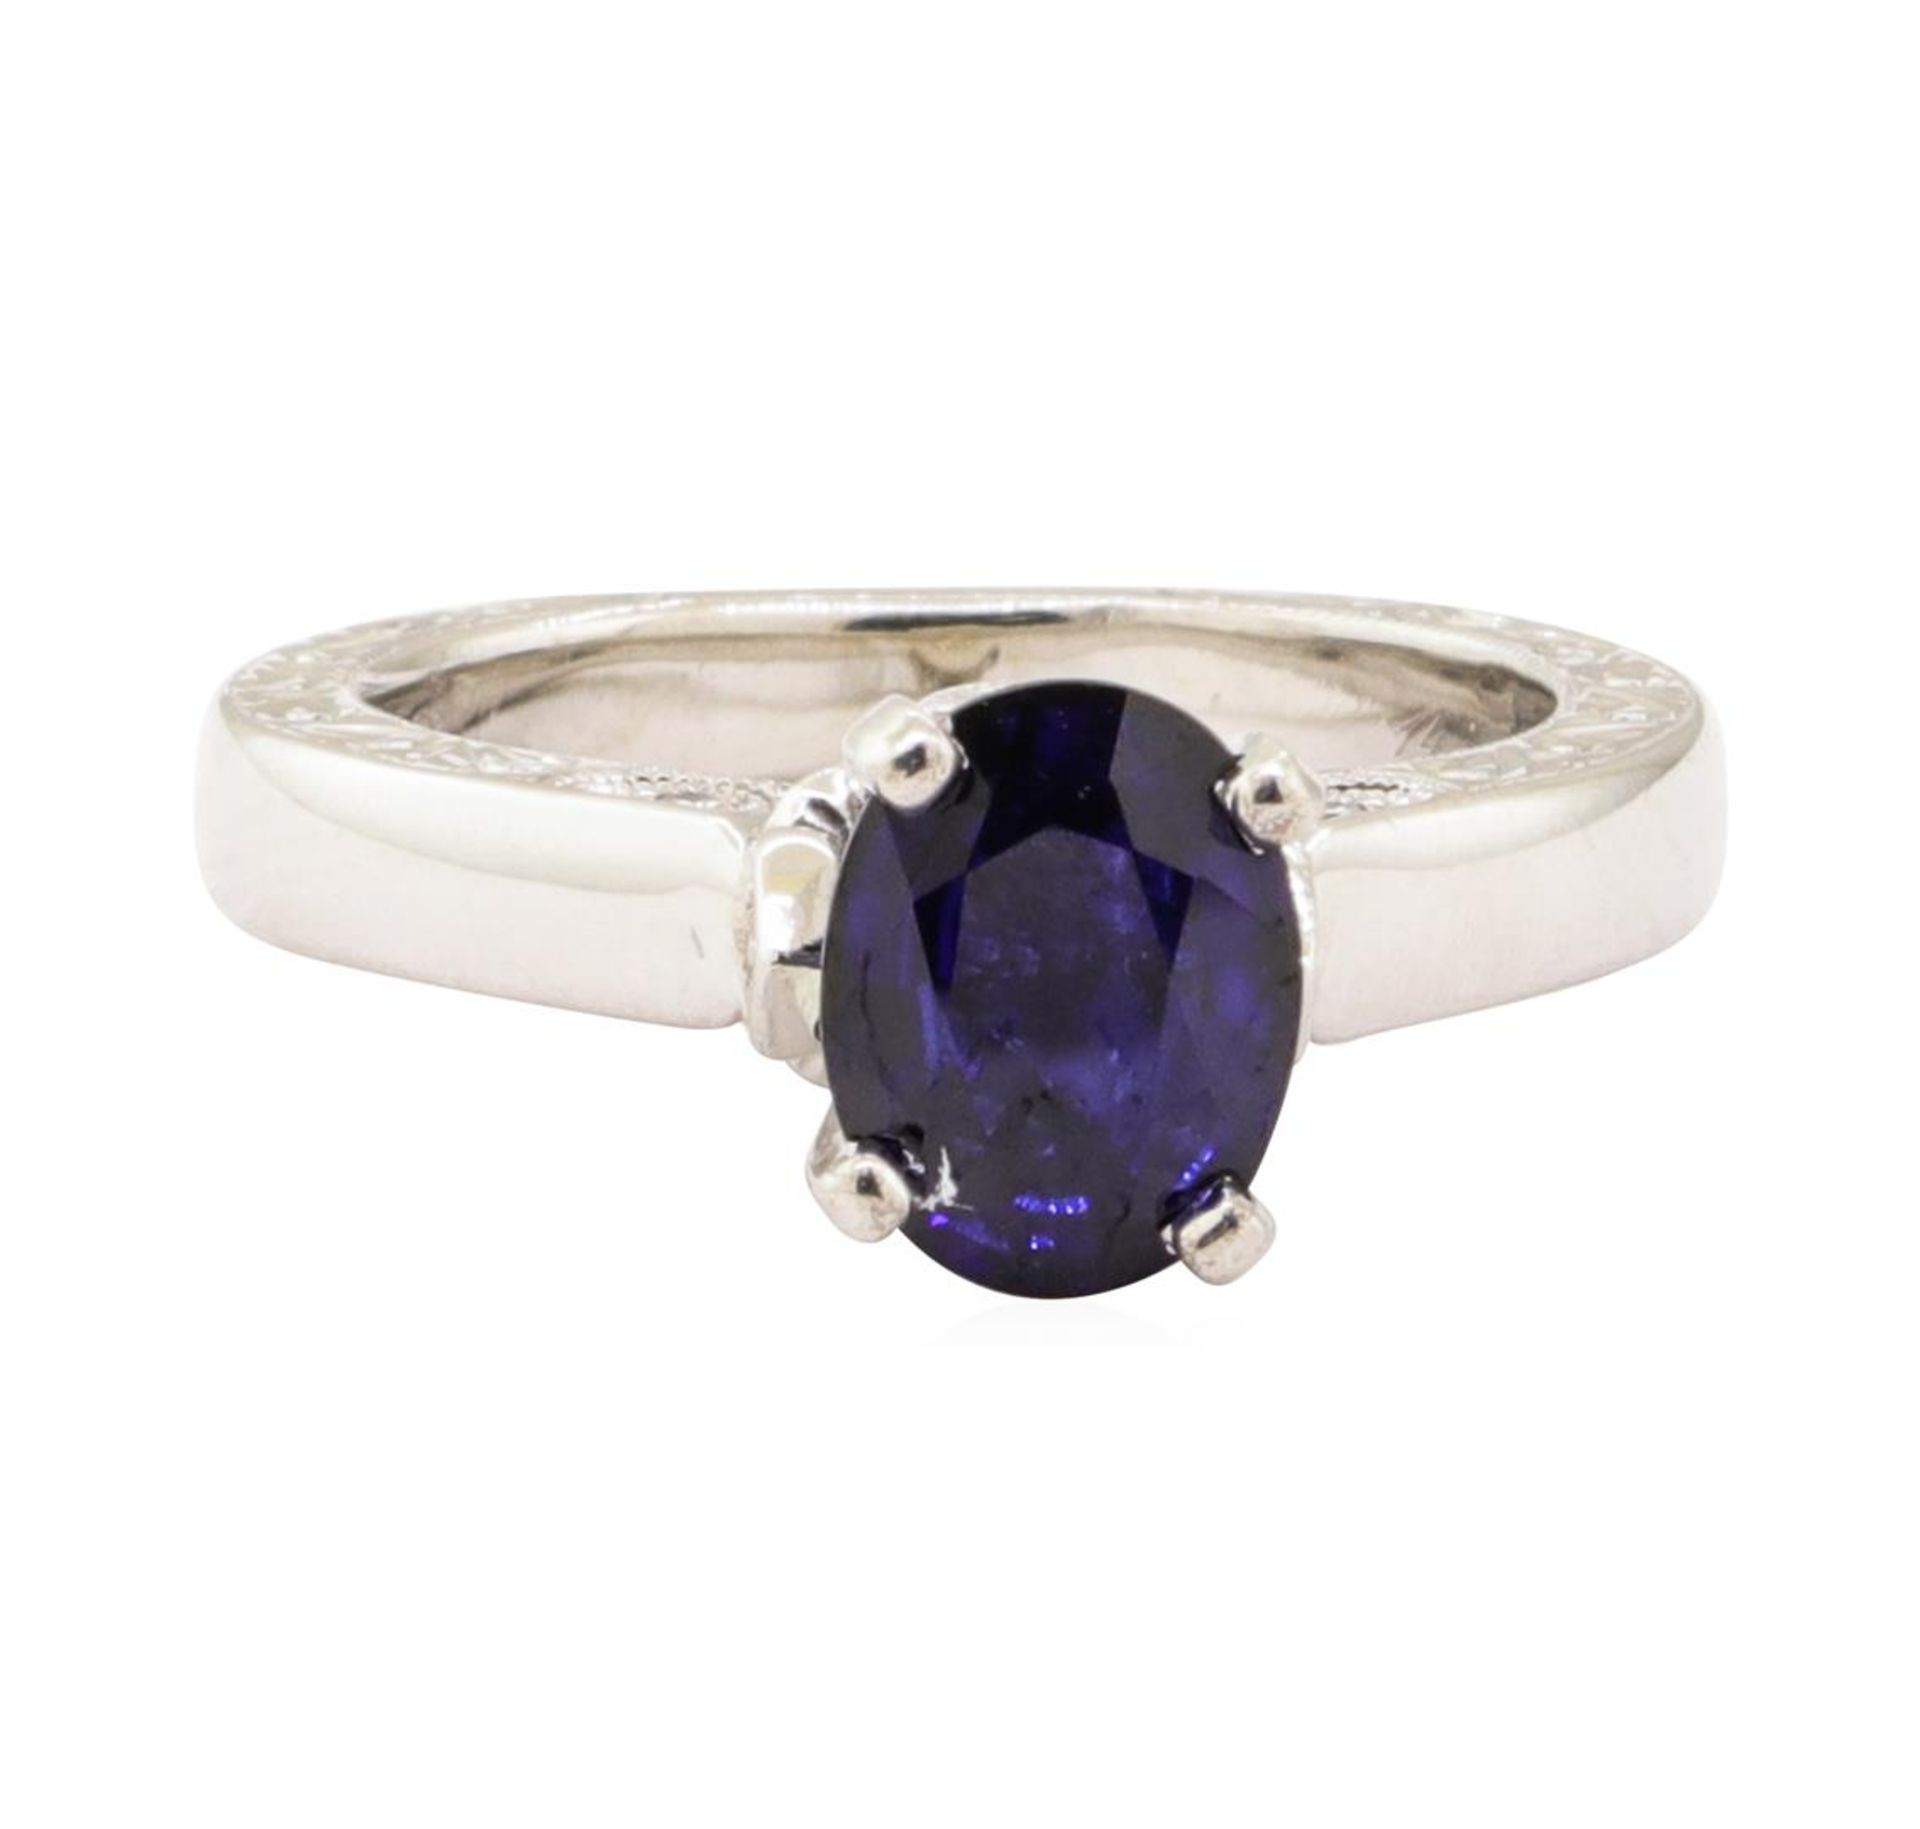 1.66 ctw Blue Sapphire and Diamond Ring - 14KT White Gold - Image 2 of 4